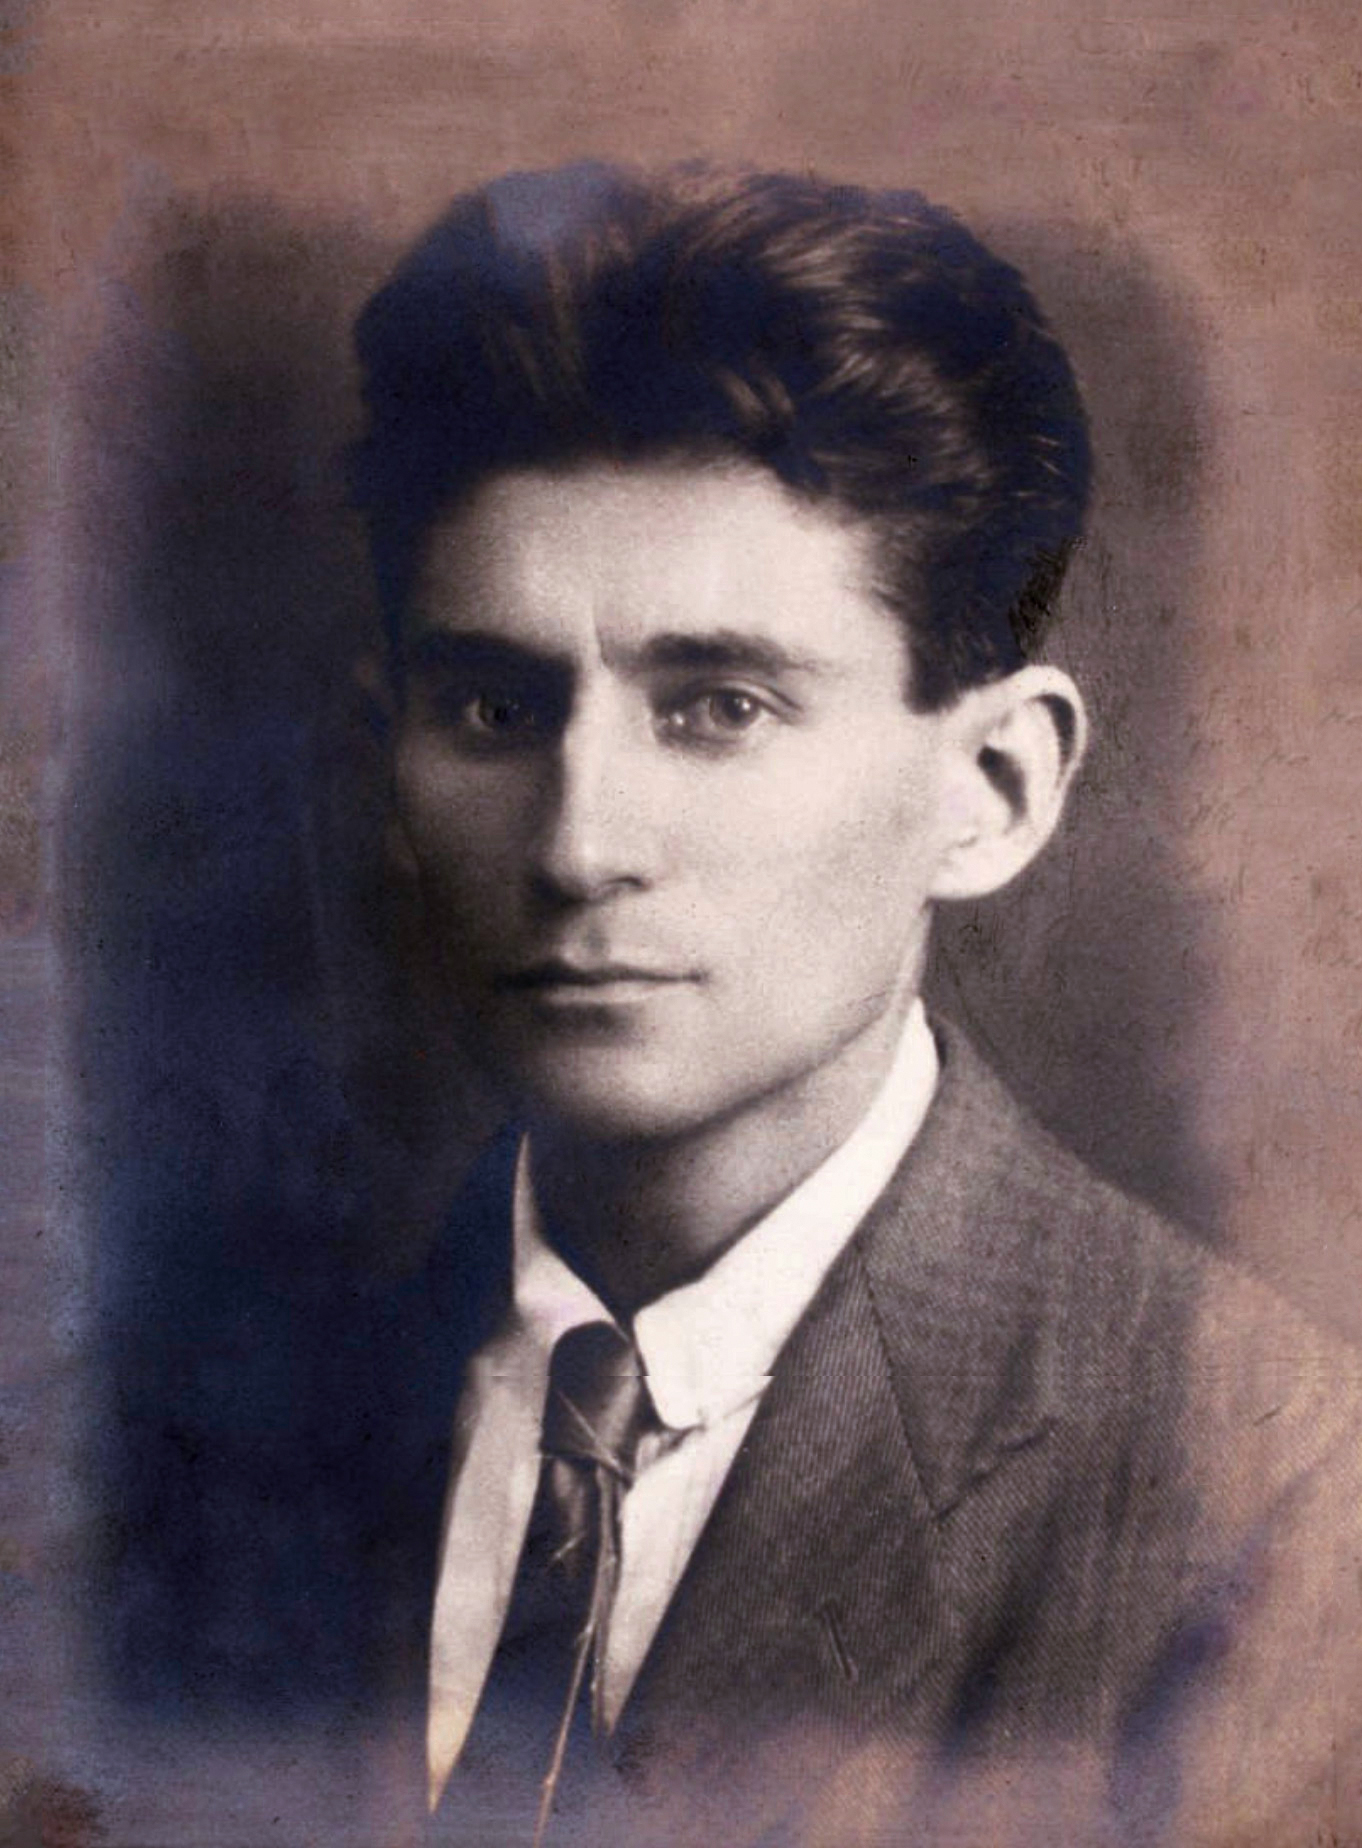 Thousands of Franz Kafka's confidant's personal documents recovered